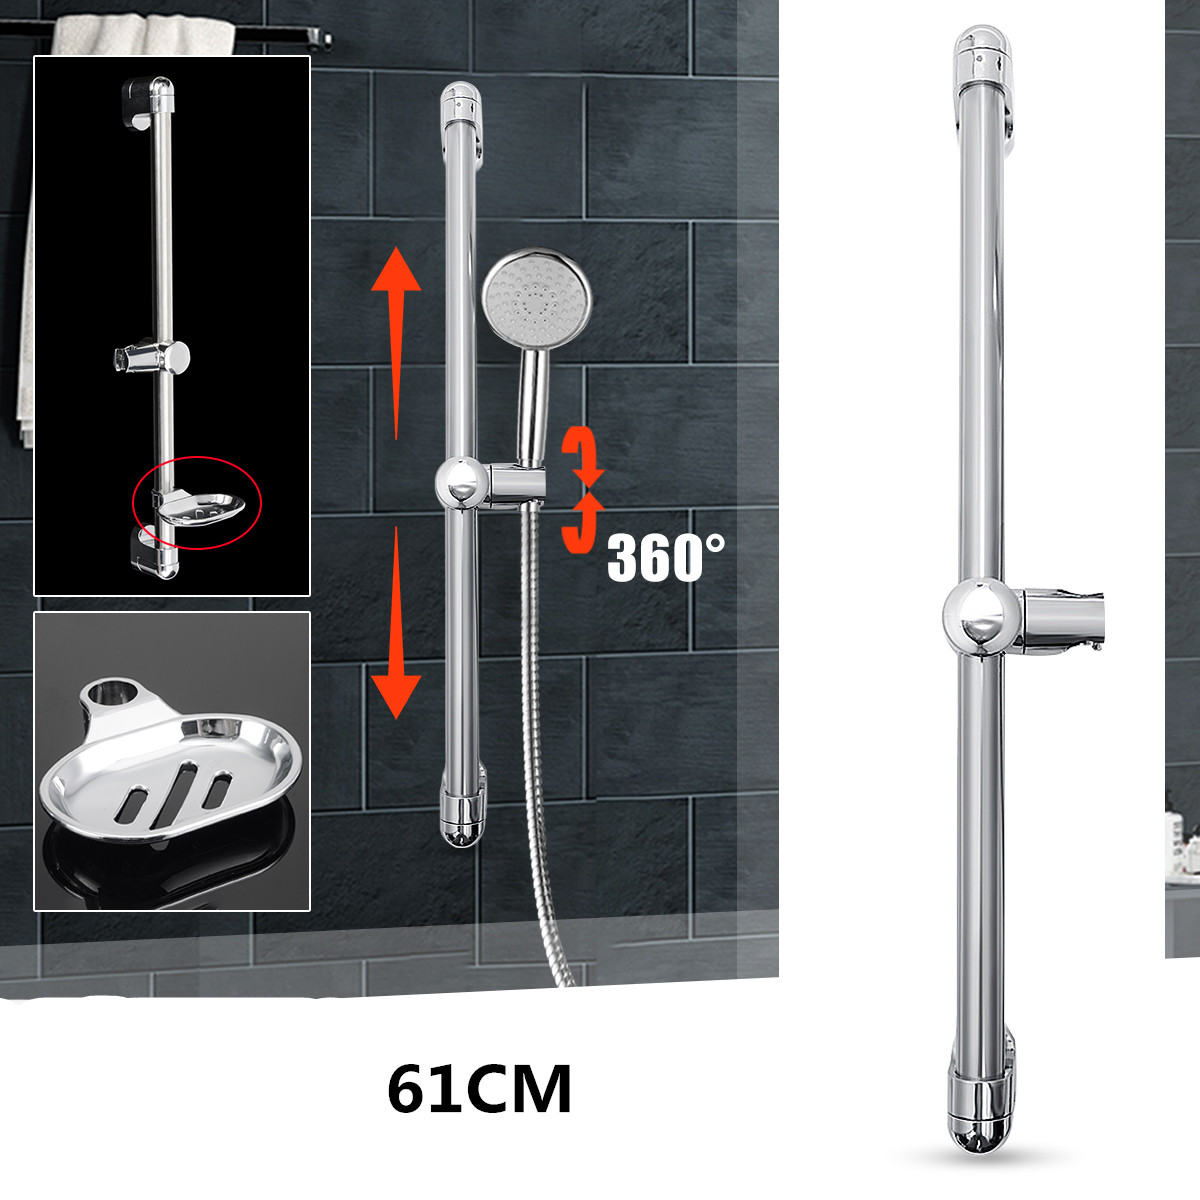 61cm Bathroom Shower Head Holder Riser Bracket Stainless Steel Chrome Adjustable Shower Riser Rail Set Shower Sliding Bar61cm Bathroom Shower Head Holder Riser Bracket Stainless Steel Chrome Adjustable Shower Riser Rail Set Shower Sliding Bar